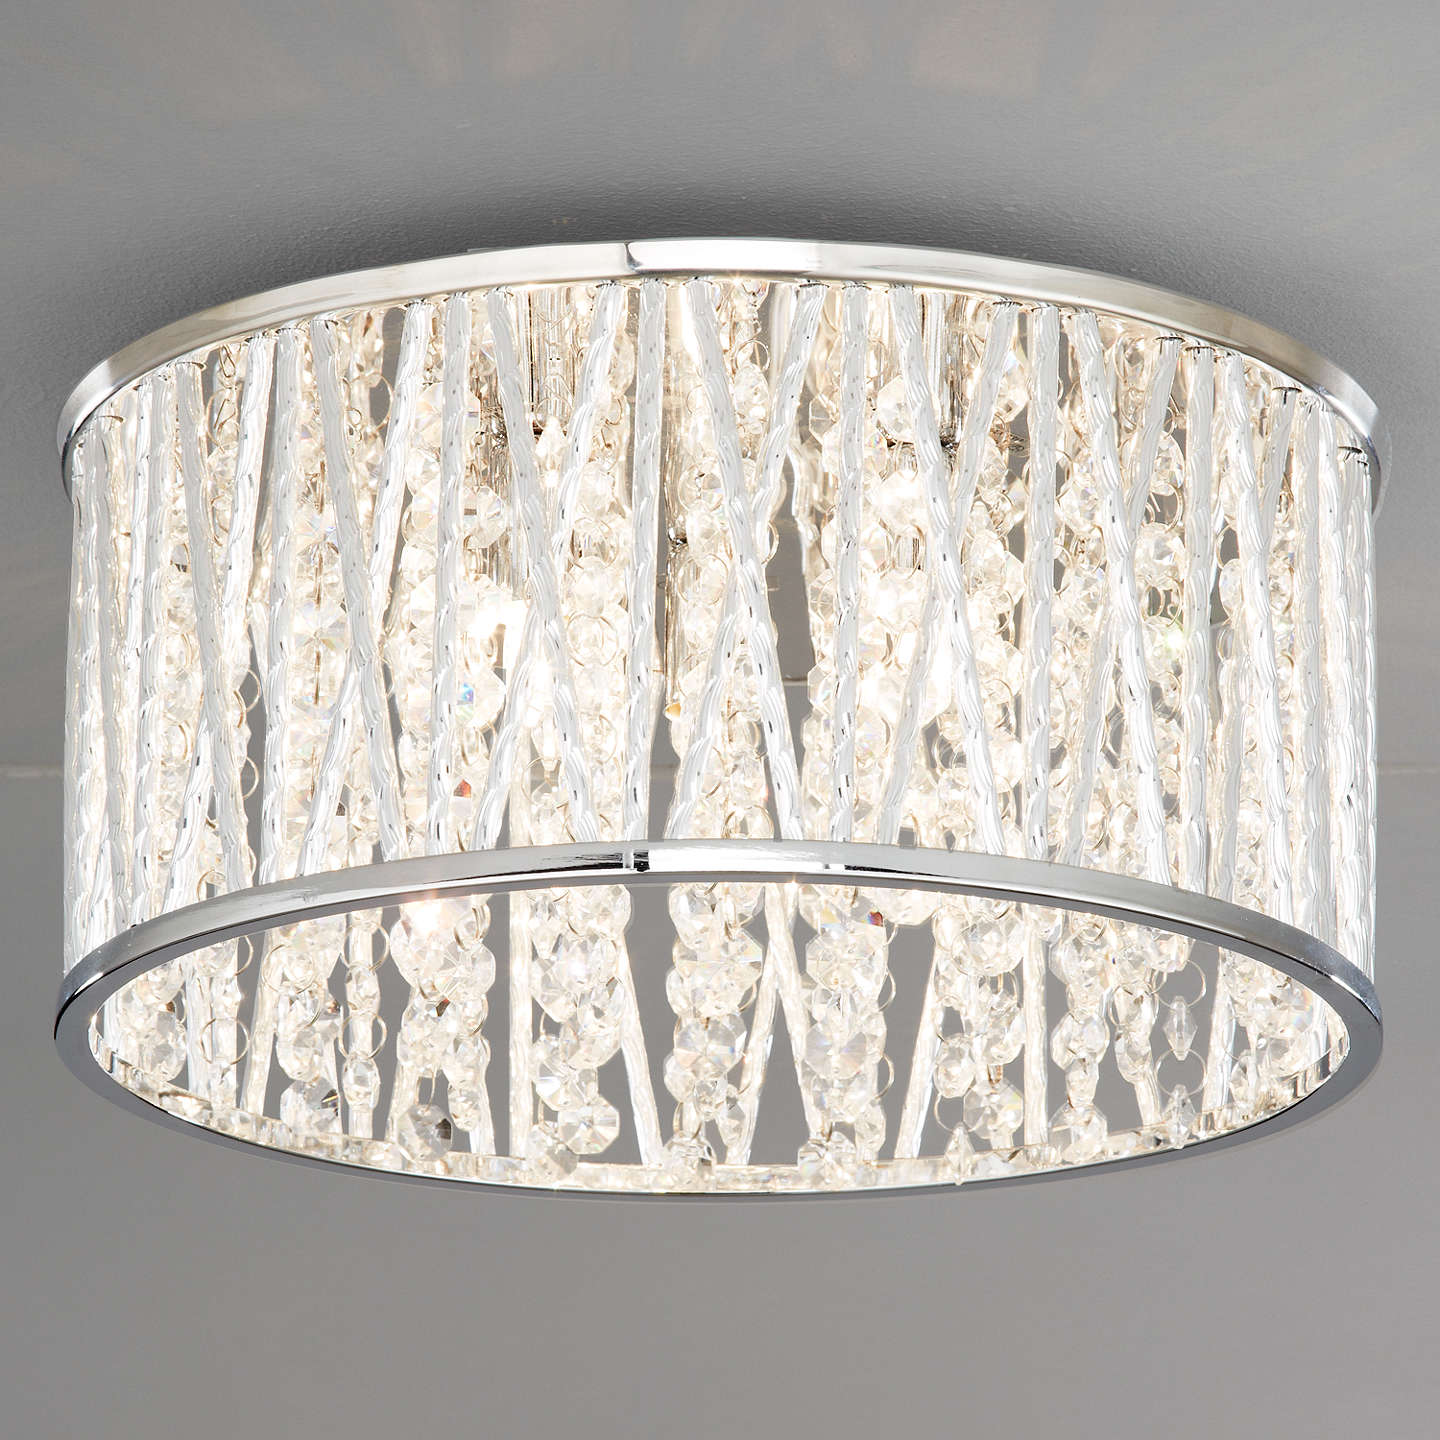 Flush Ceiling Chandeliers: John Lewis Emilia Crystal Drum Flush Ceiling Light At John